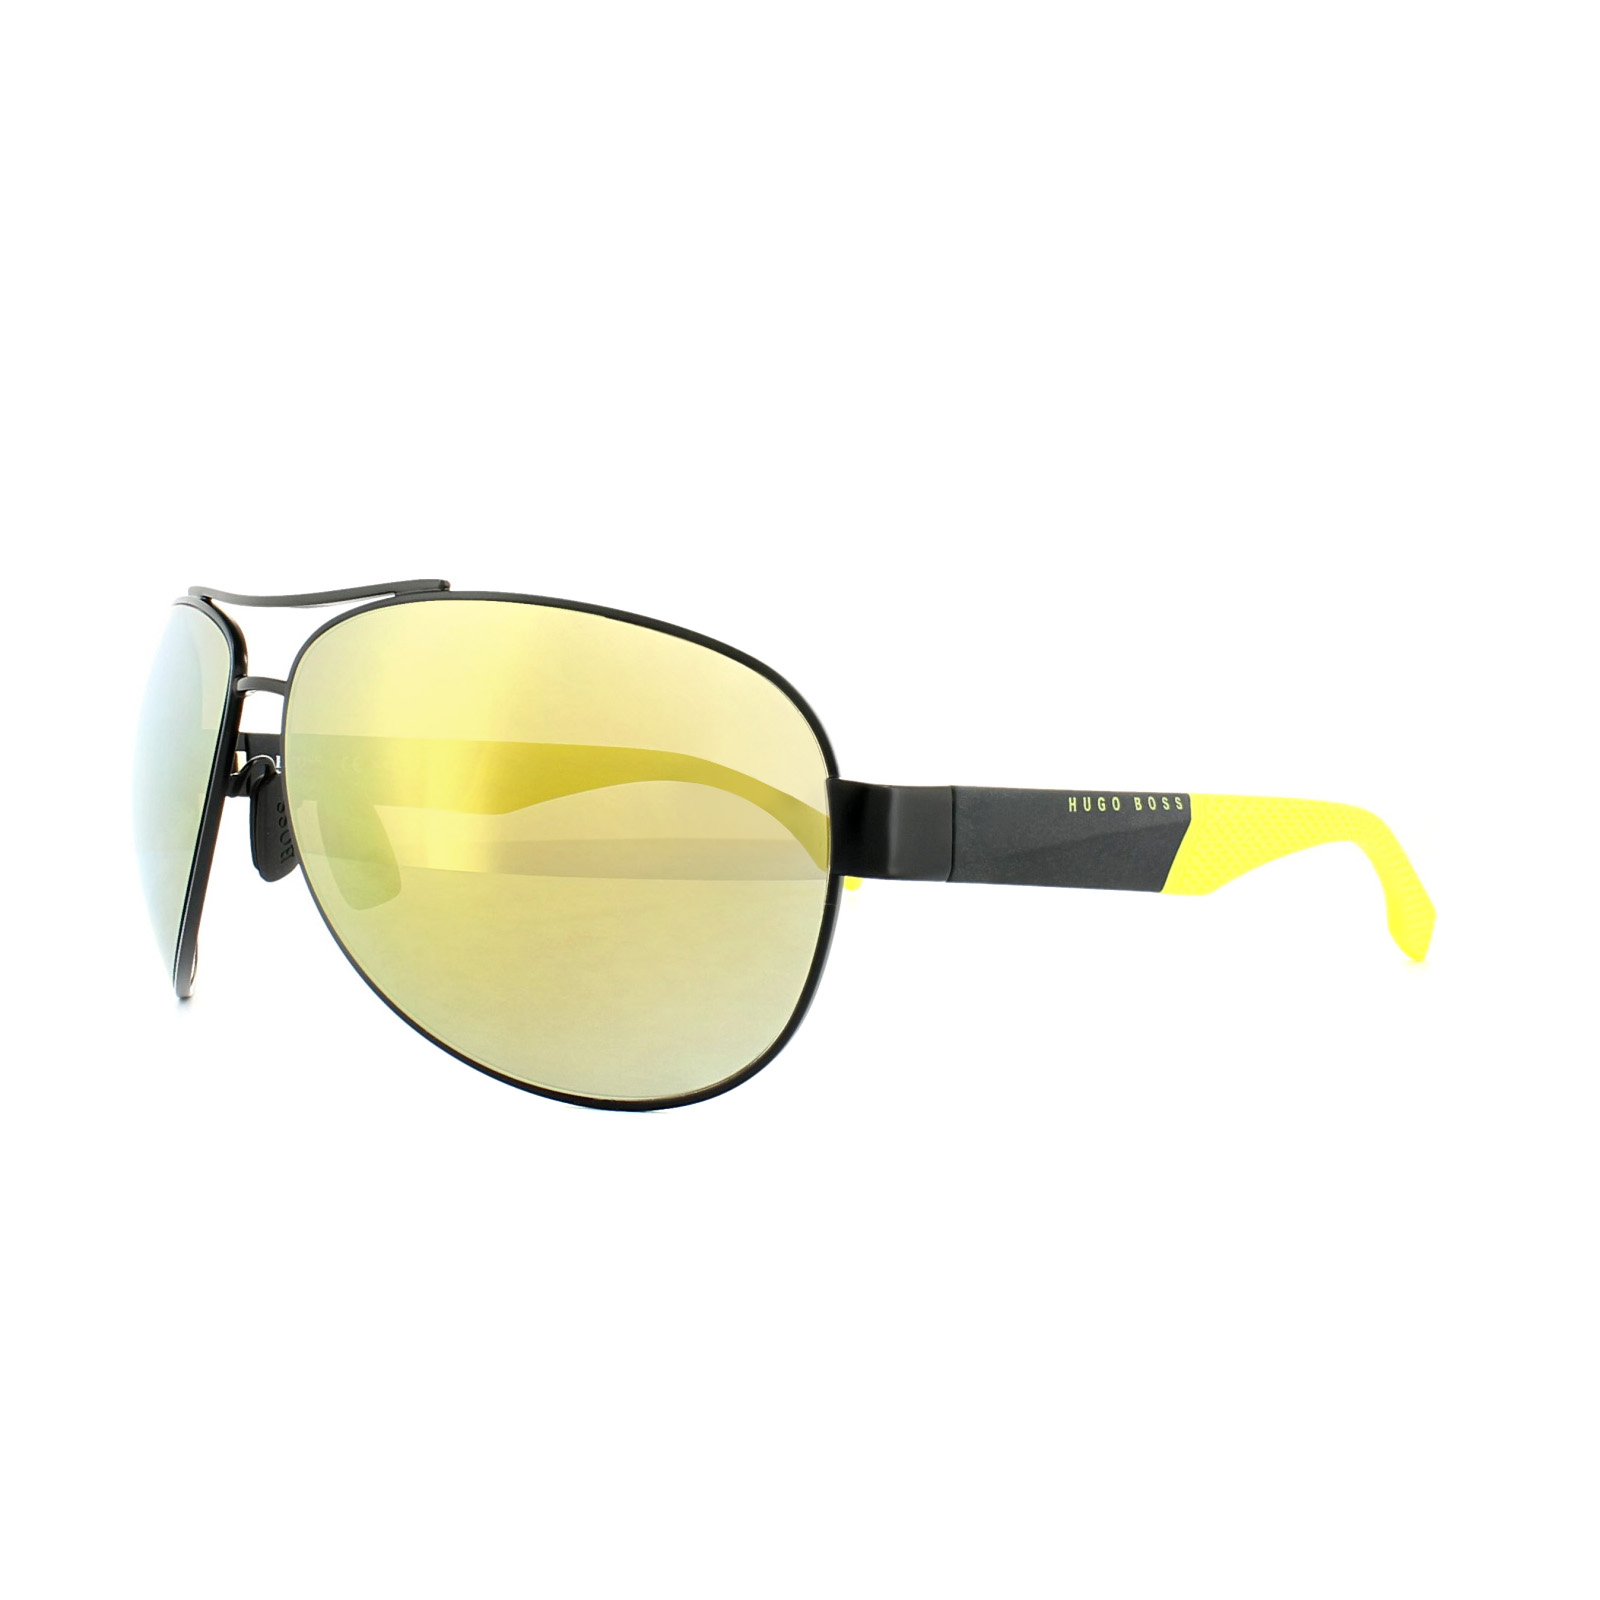 b960b3579 Details about Hugo Boss Sunglasses 0915 1Y3 C4 Matt Black & Yellow Yellow  Mirror Polarized